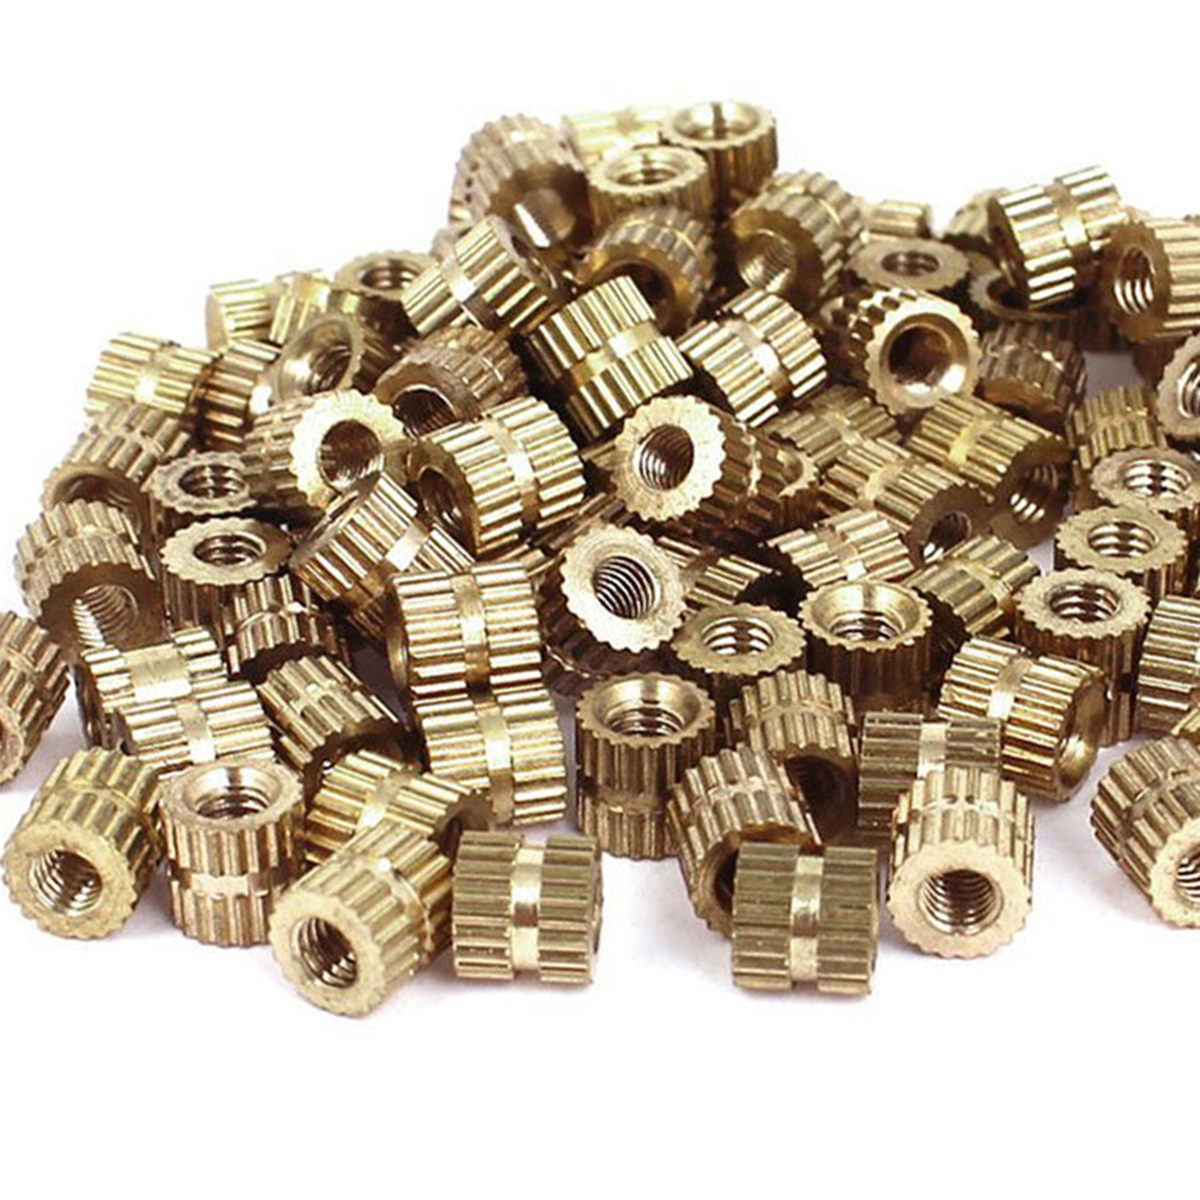 100pcs Round M3 Metric Threaded Brass Knurl Insert Nuts 3mm Inner Thread Diameter Gold Tone For Tightly Fixing